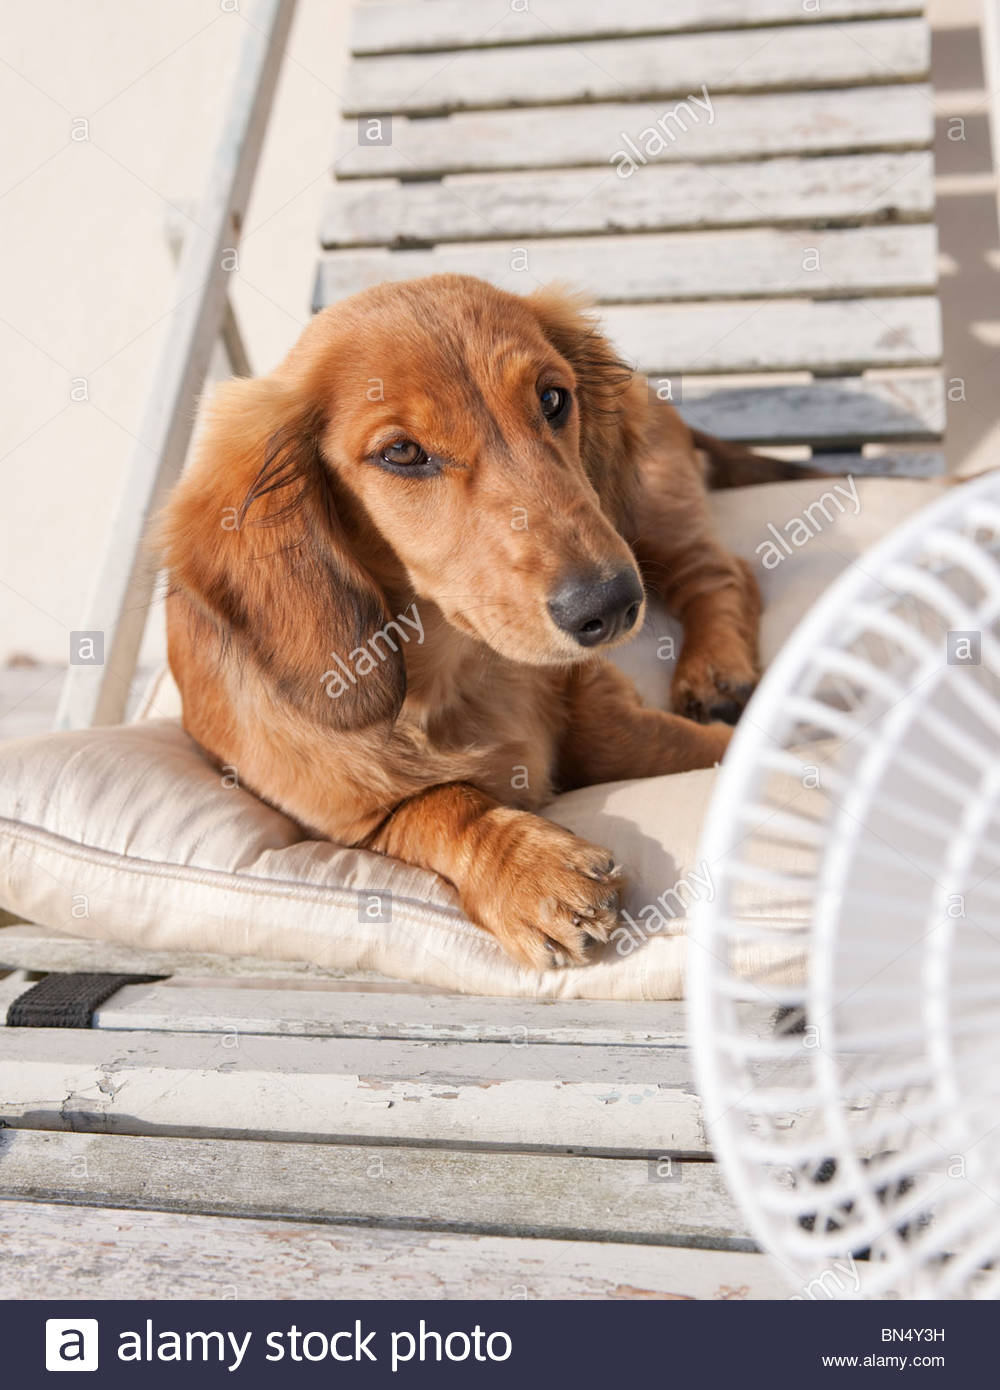 Dachshund puppy keeping cool in hot weather or heatwave using an electric fan - Stock Image